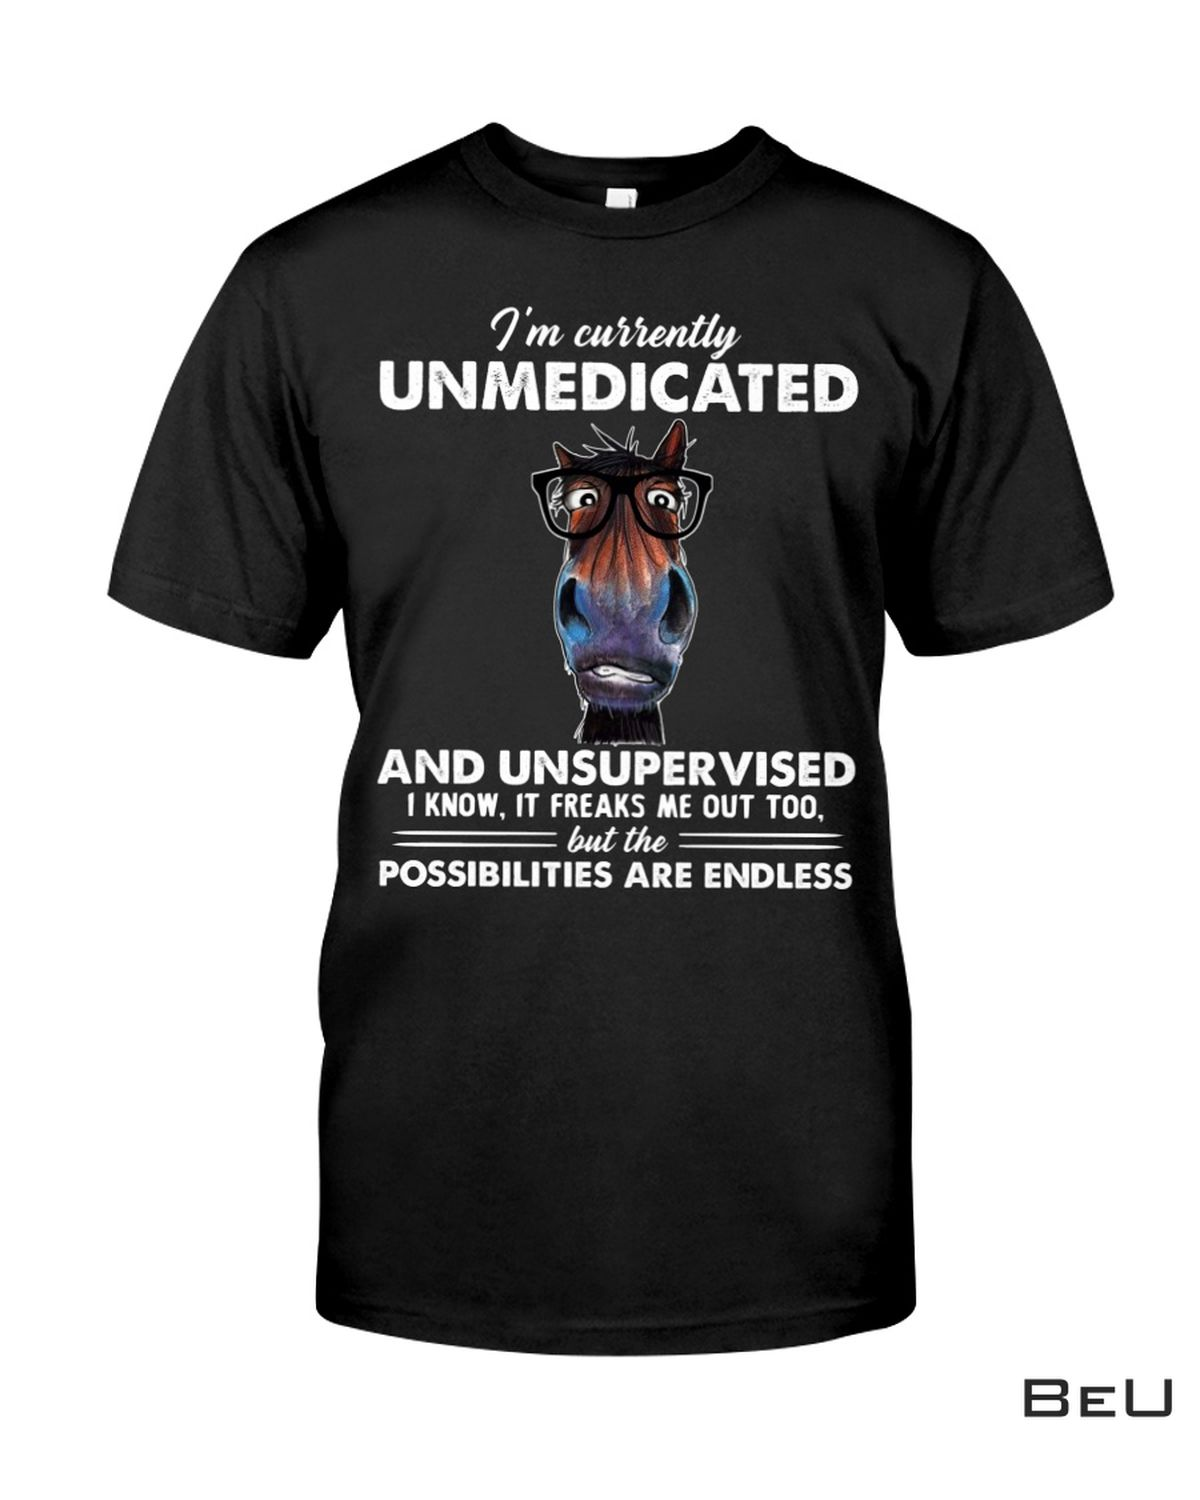 I'm Currently Unmedicated And Unsupervised Shirt, hoodie, tank top